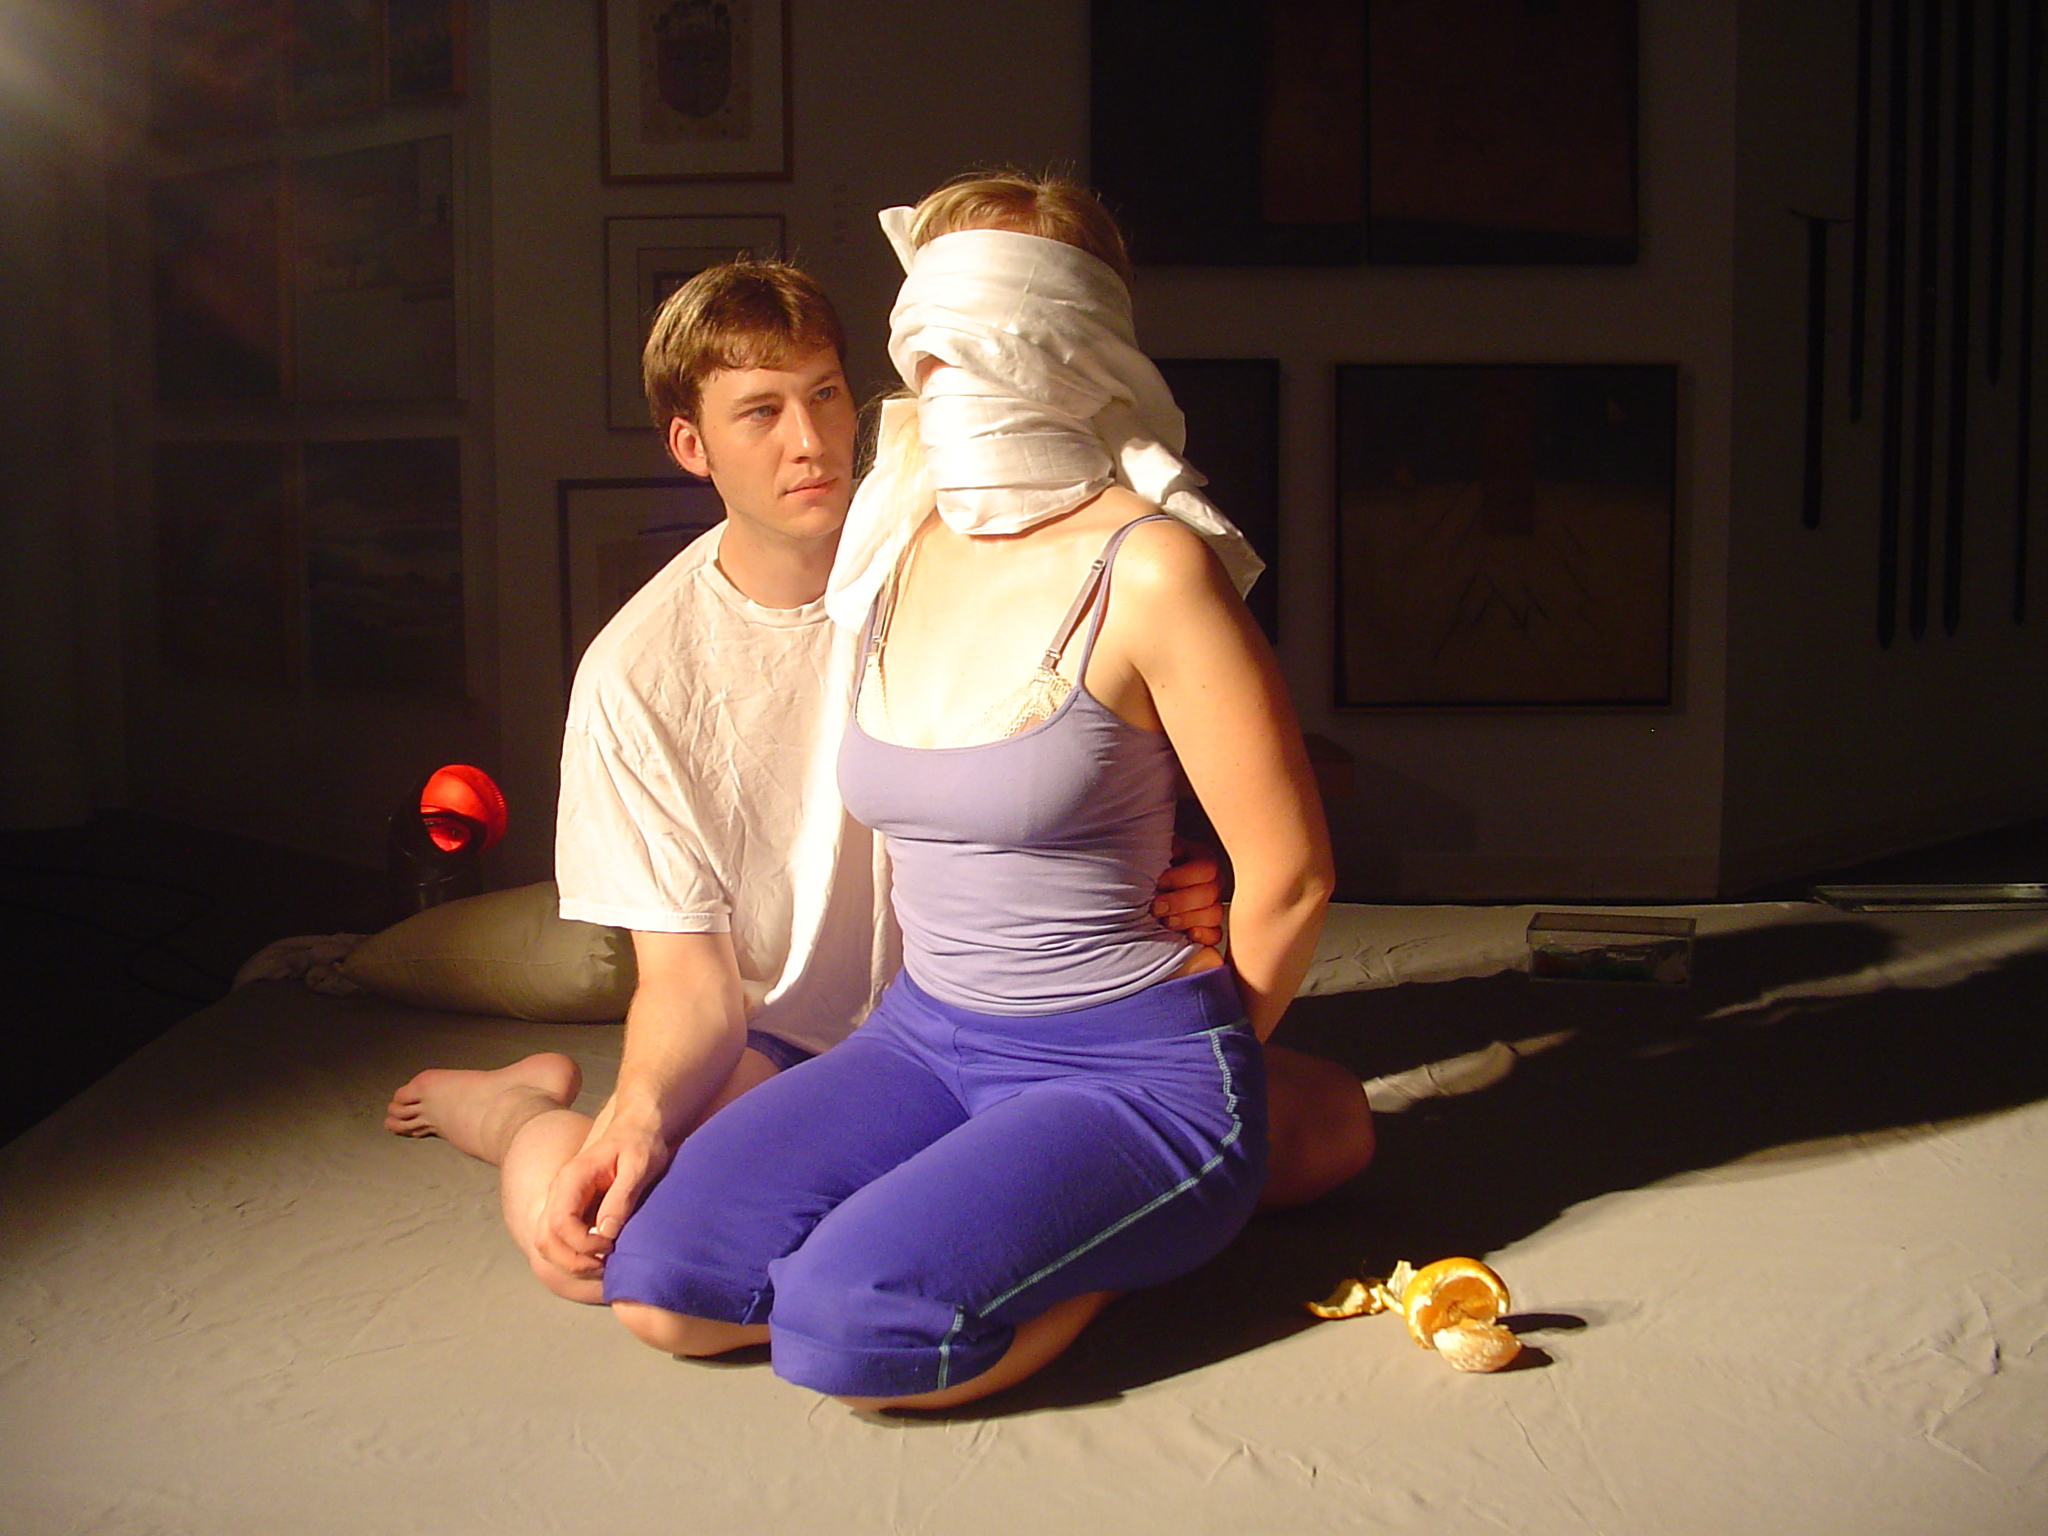 Dustin Loomis as Sam and Stephanie Burden as Louisa in DC Dollies and the Rocket Bitch Revue's production of MAY 39th at the Capital Fringe Festival, Washington DC, July 2006.